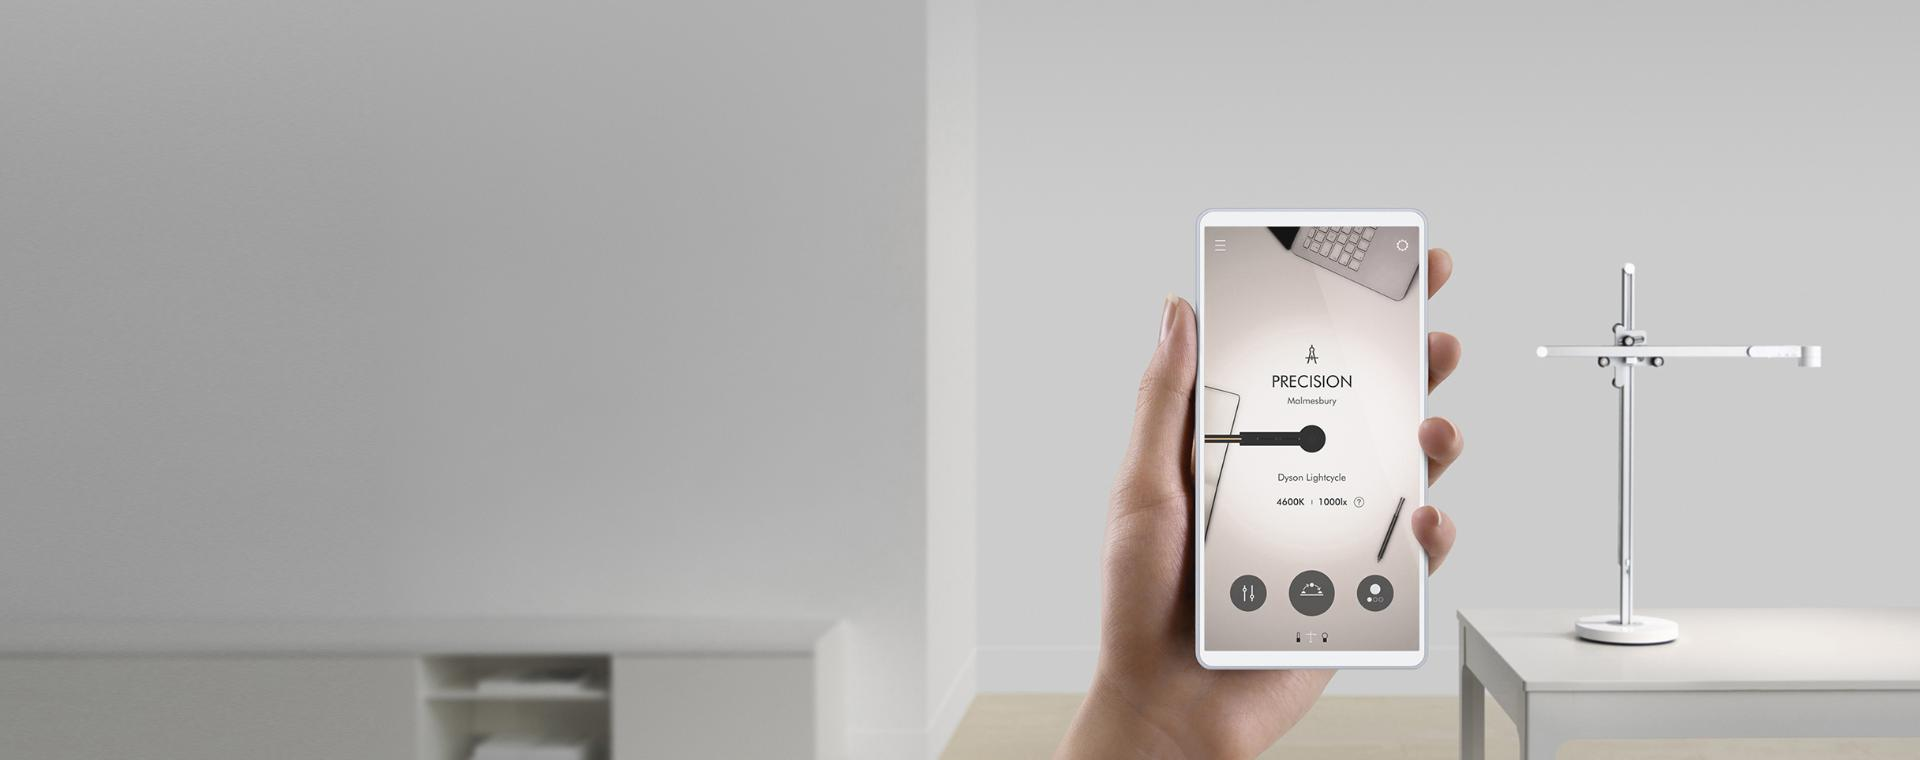 A smartphone screen with the Dyson Link app